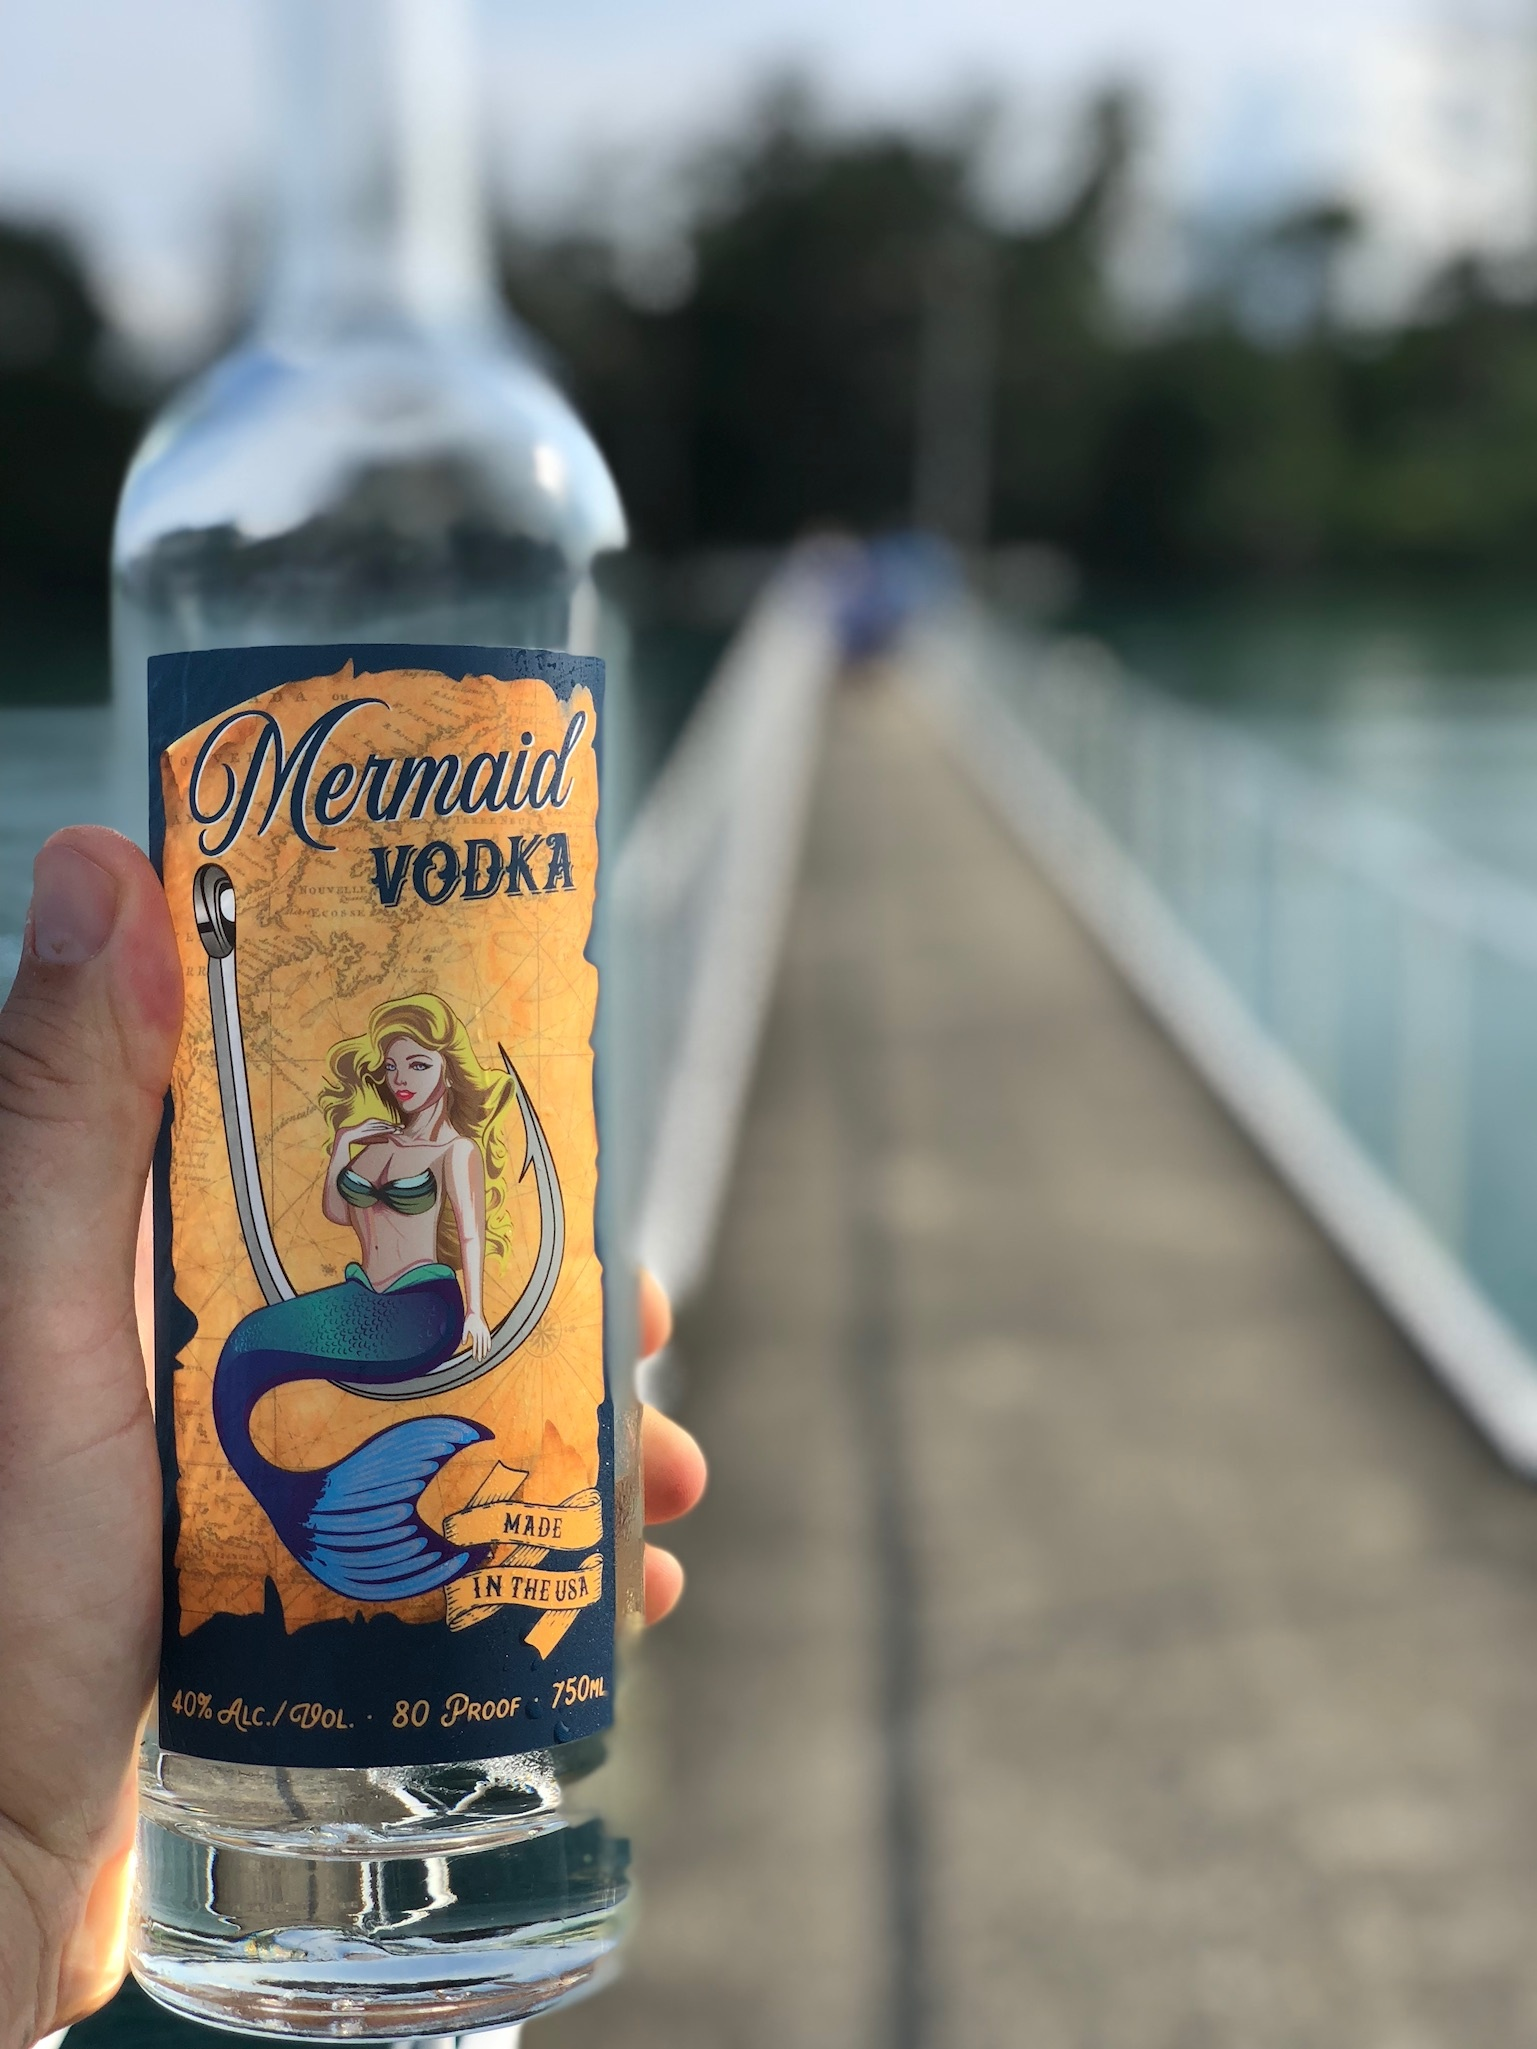 Bottle of Mermaid Vodka